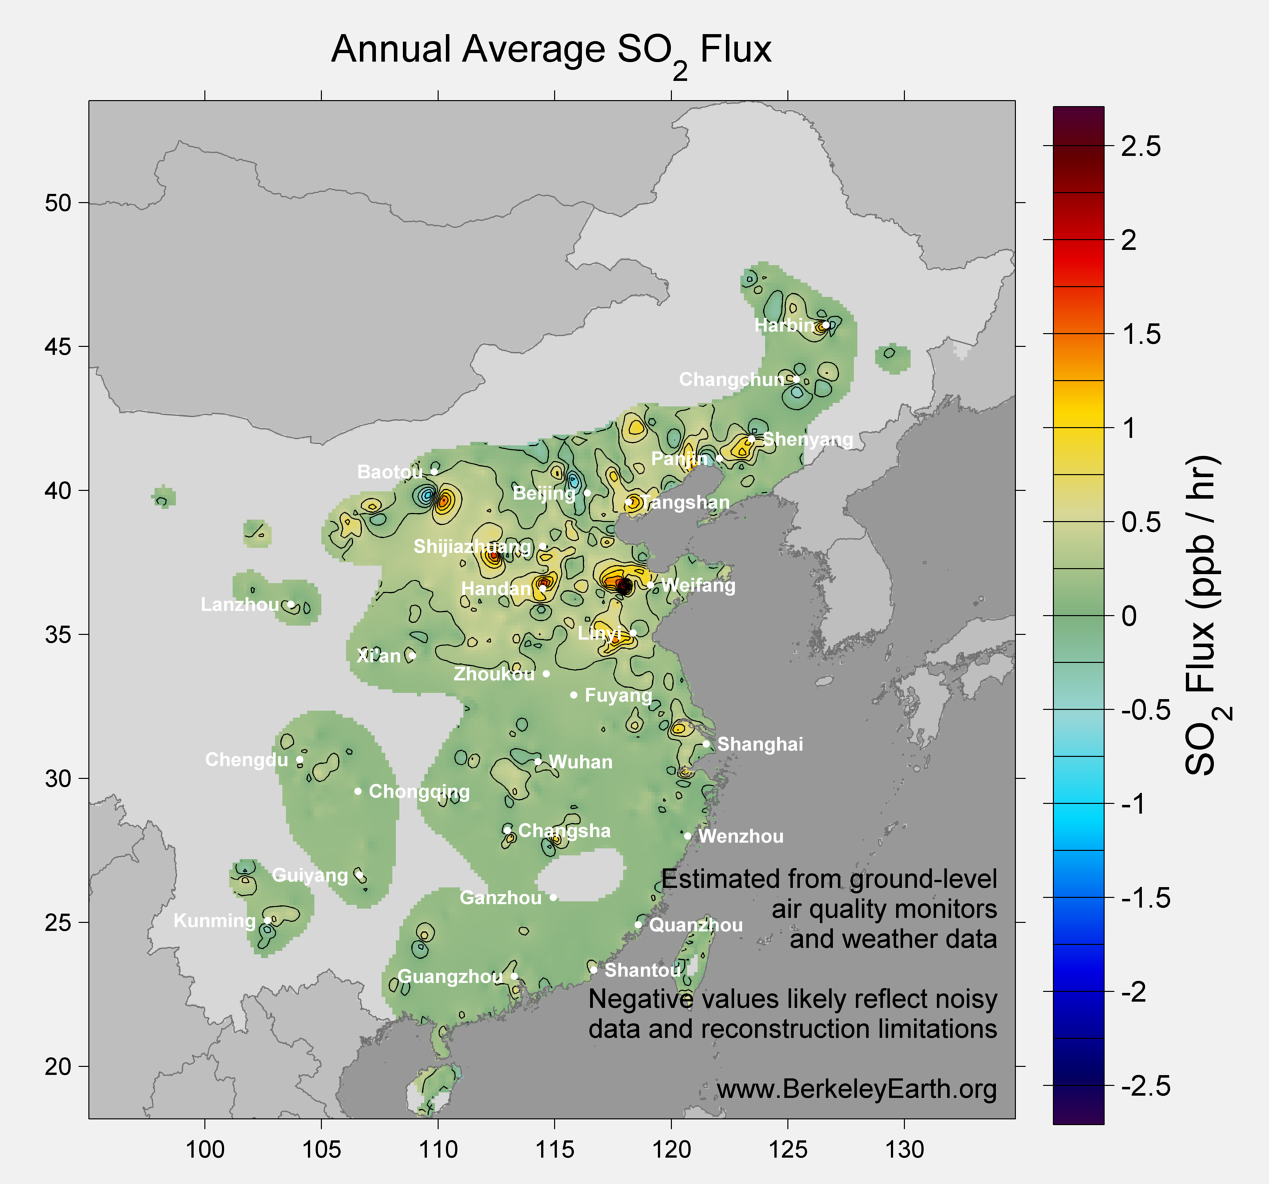 China_so2_Average_Flux_Map